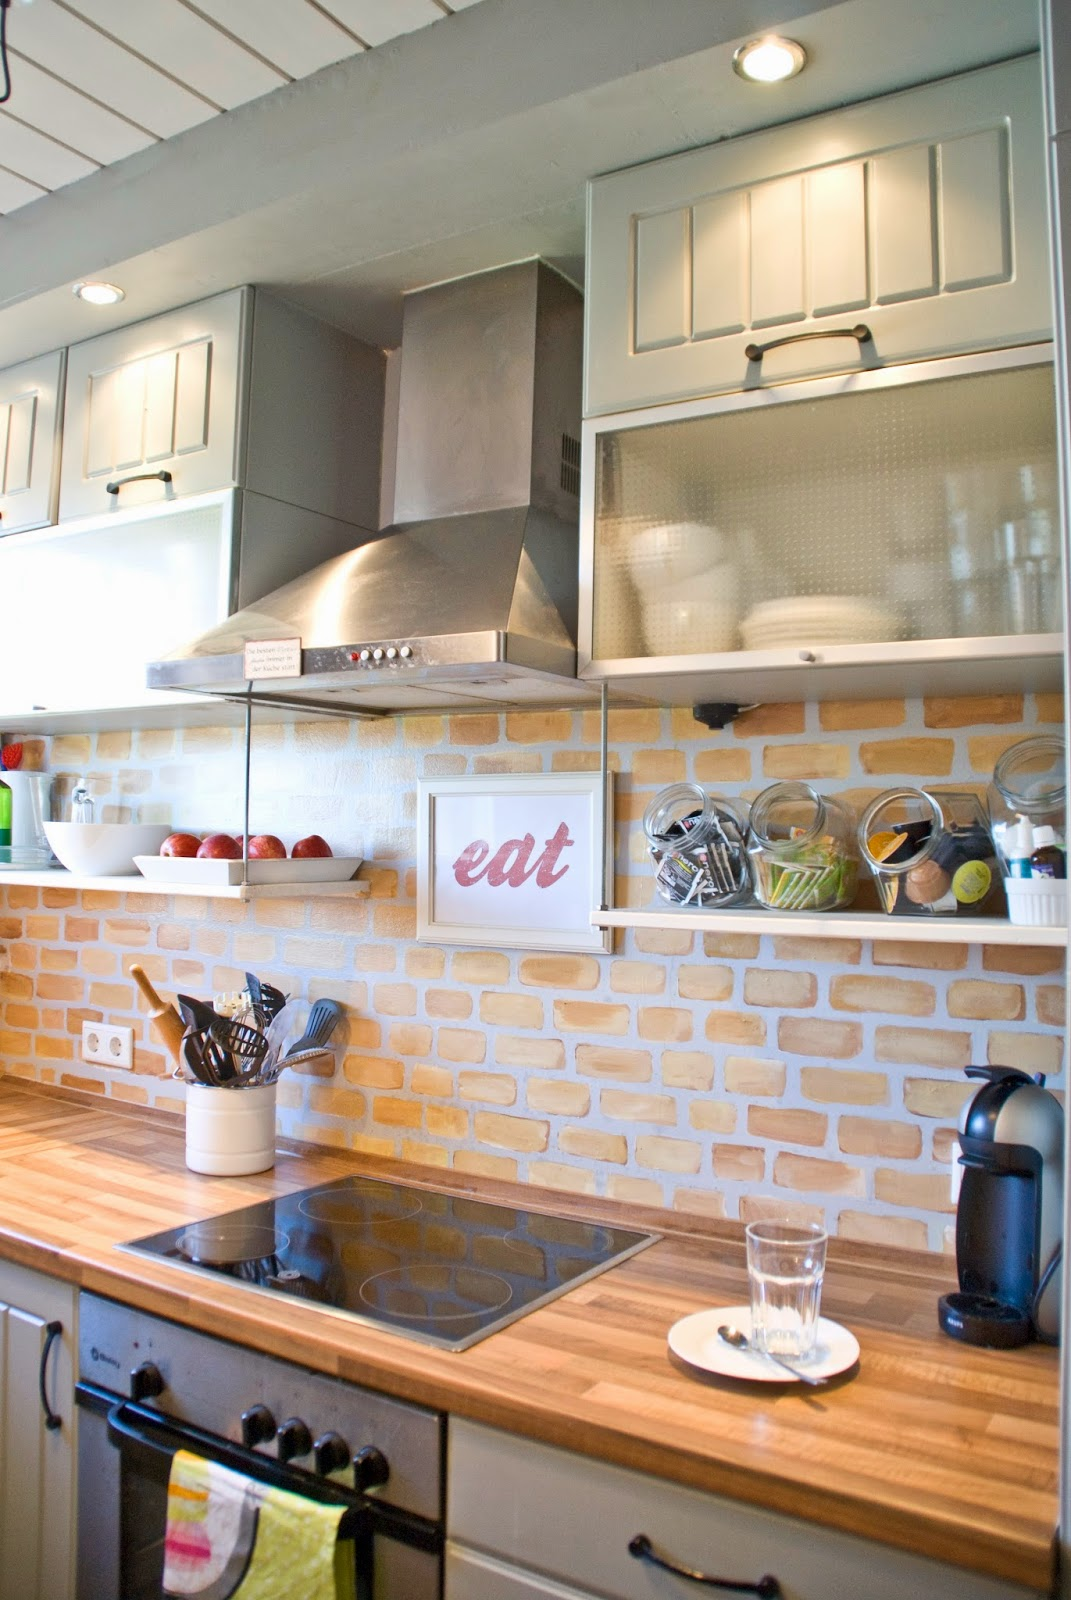 Painted Faux Brick Backsplash With Wood Countertops   Pudel Design Featured  On @Remodelaholic